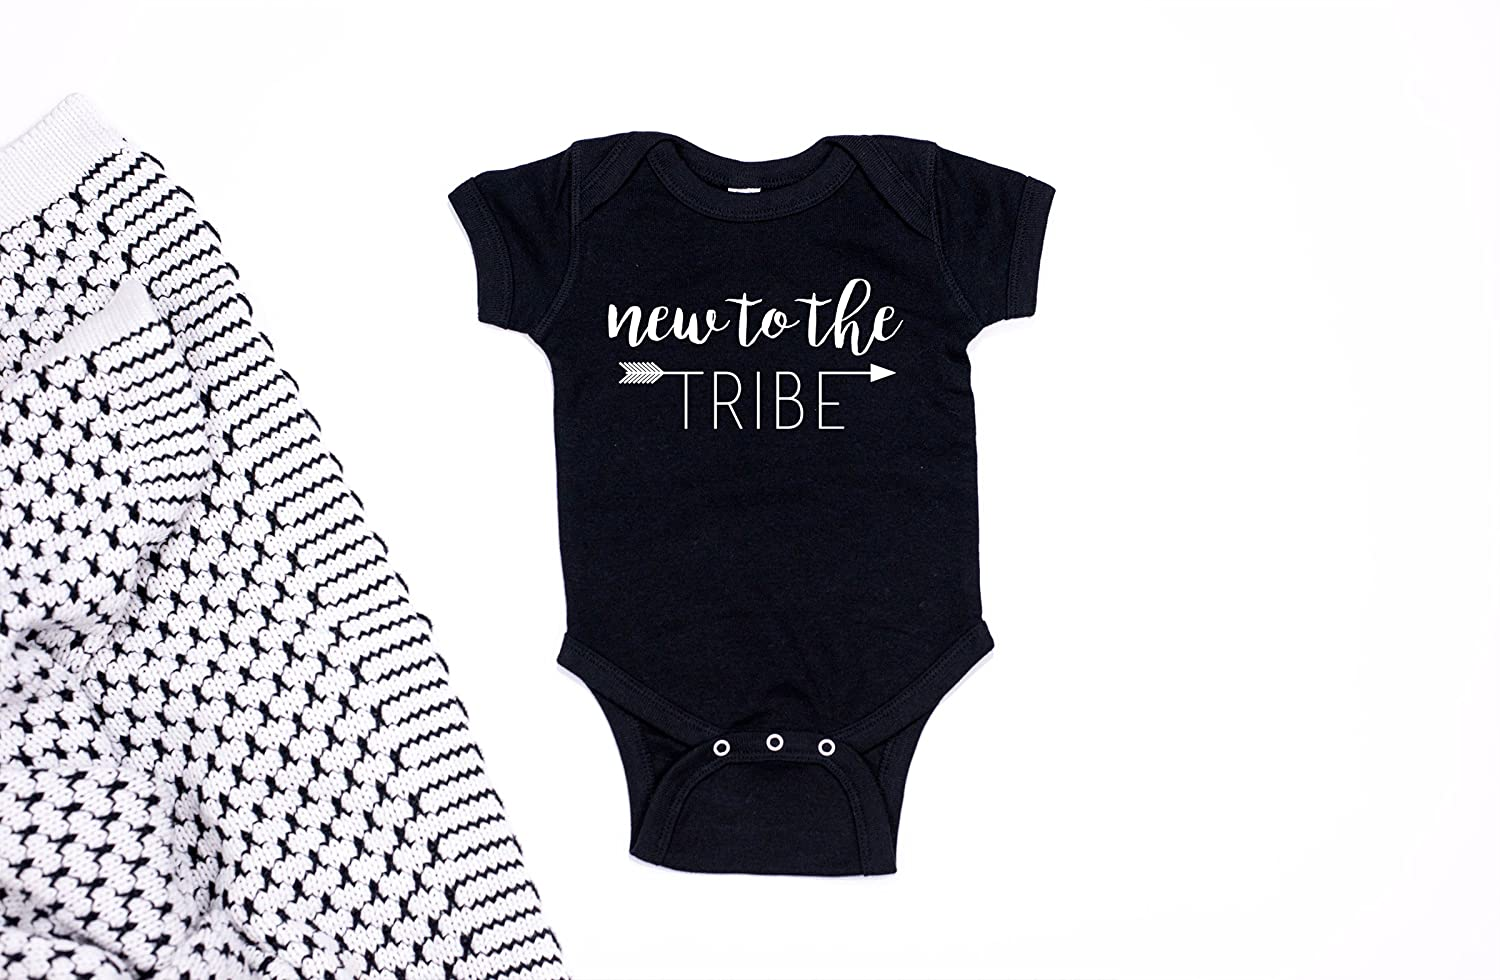 New to the Tribe Baby Bodysuit - Baby Apparel - Baby Clothes - Baby Onesie - Baby Shower Gift - Baby Gift - Unisex Baby Bodysuit - Tribal